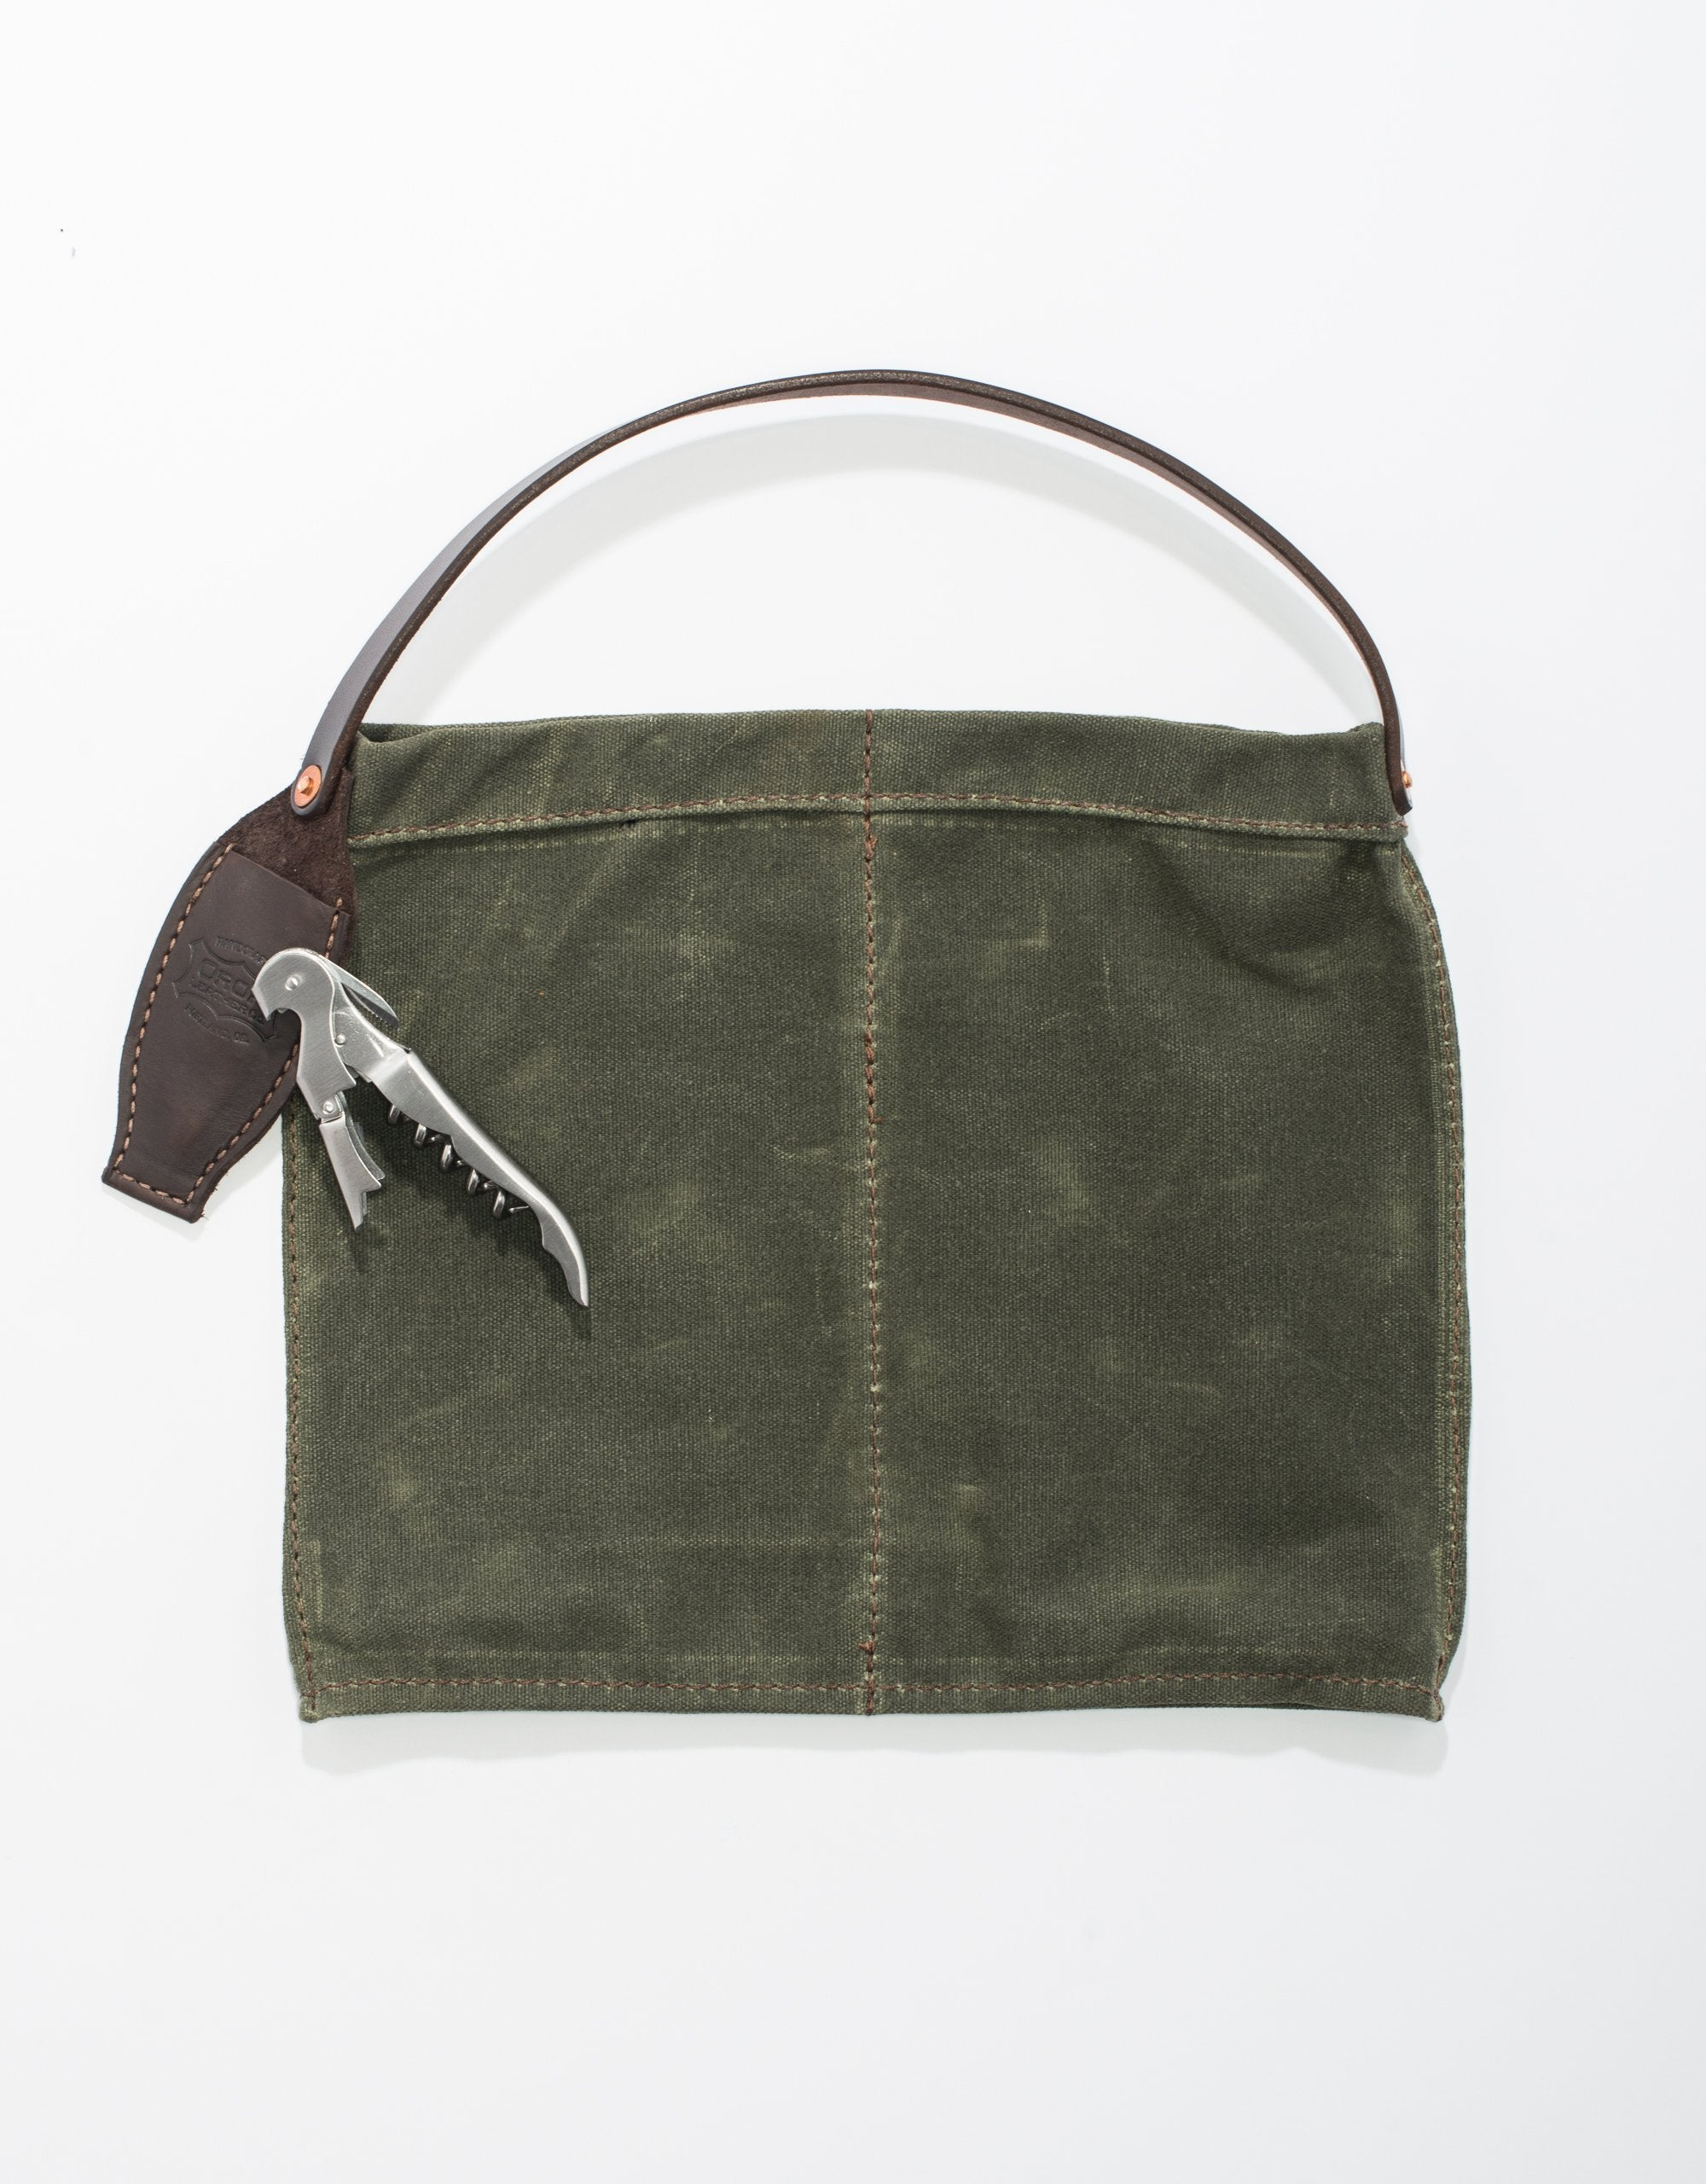 WINE CARRIER - OLIVE